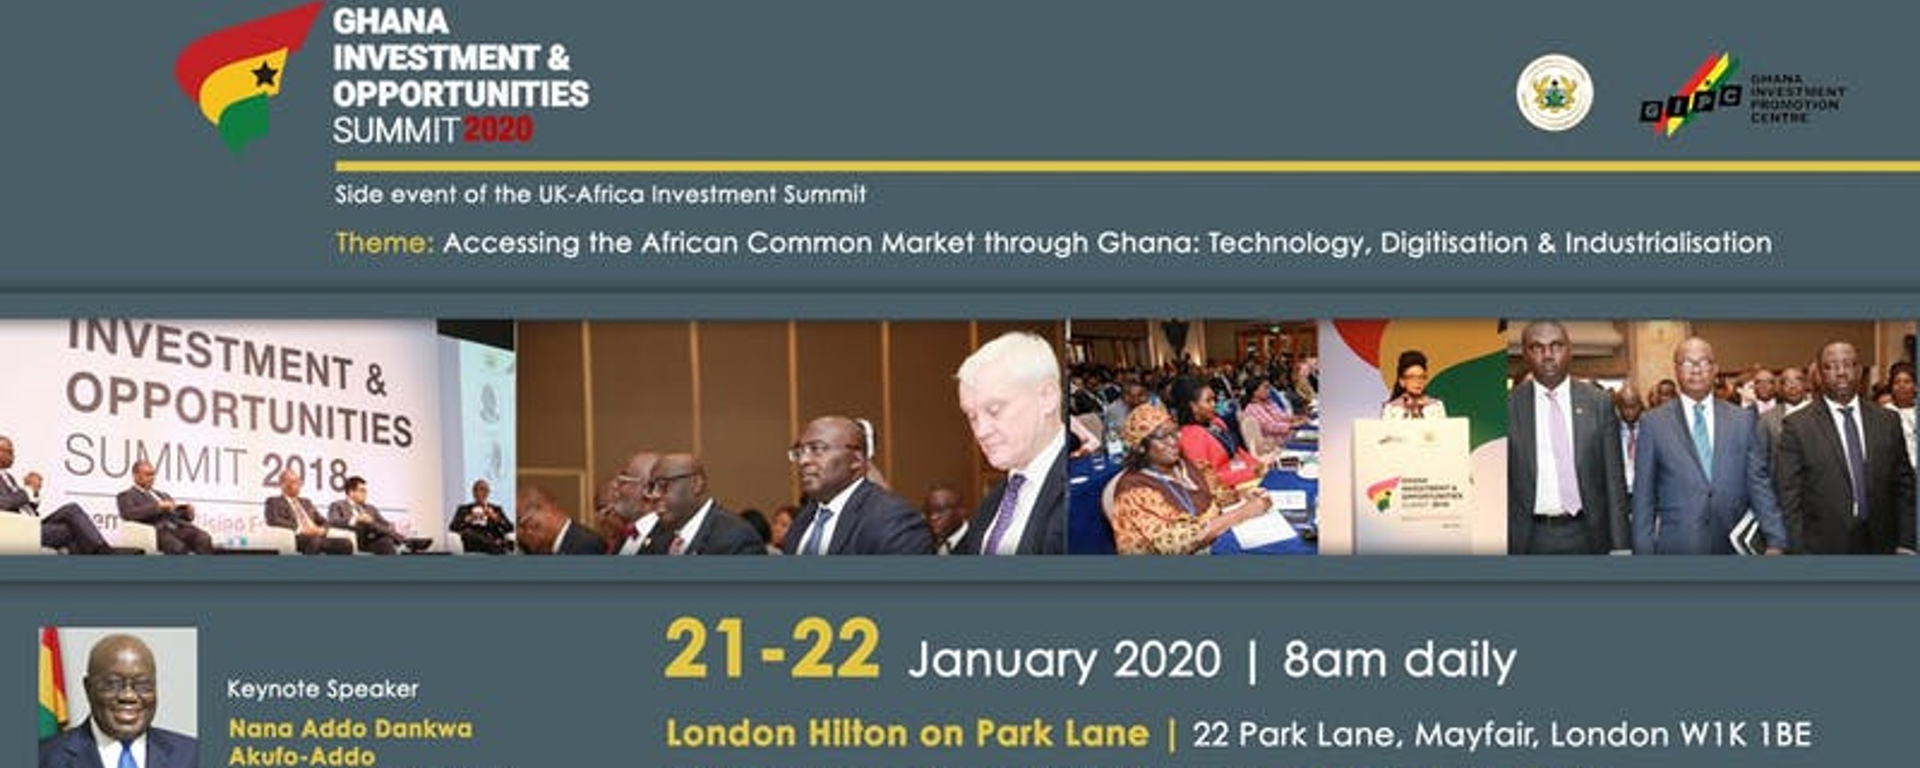 Ghana Investment Promotion Centre - Ghana Investment & Opportunities Summit 2020 Movemeback African event cover image